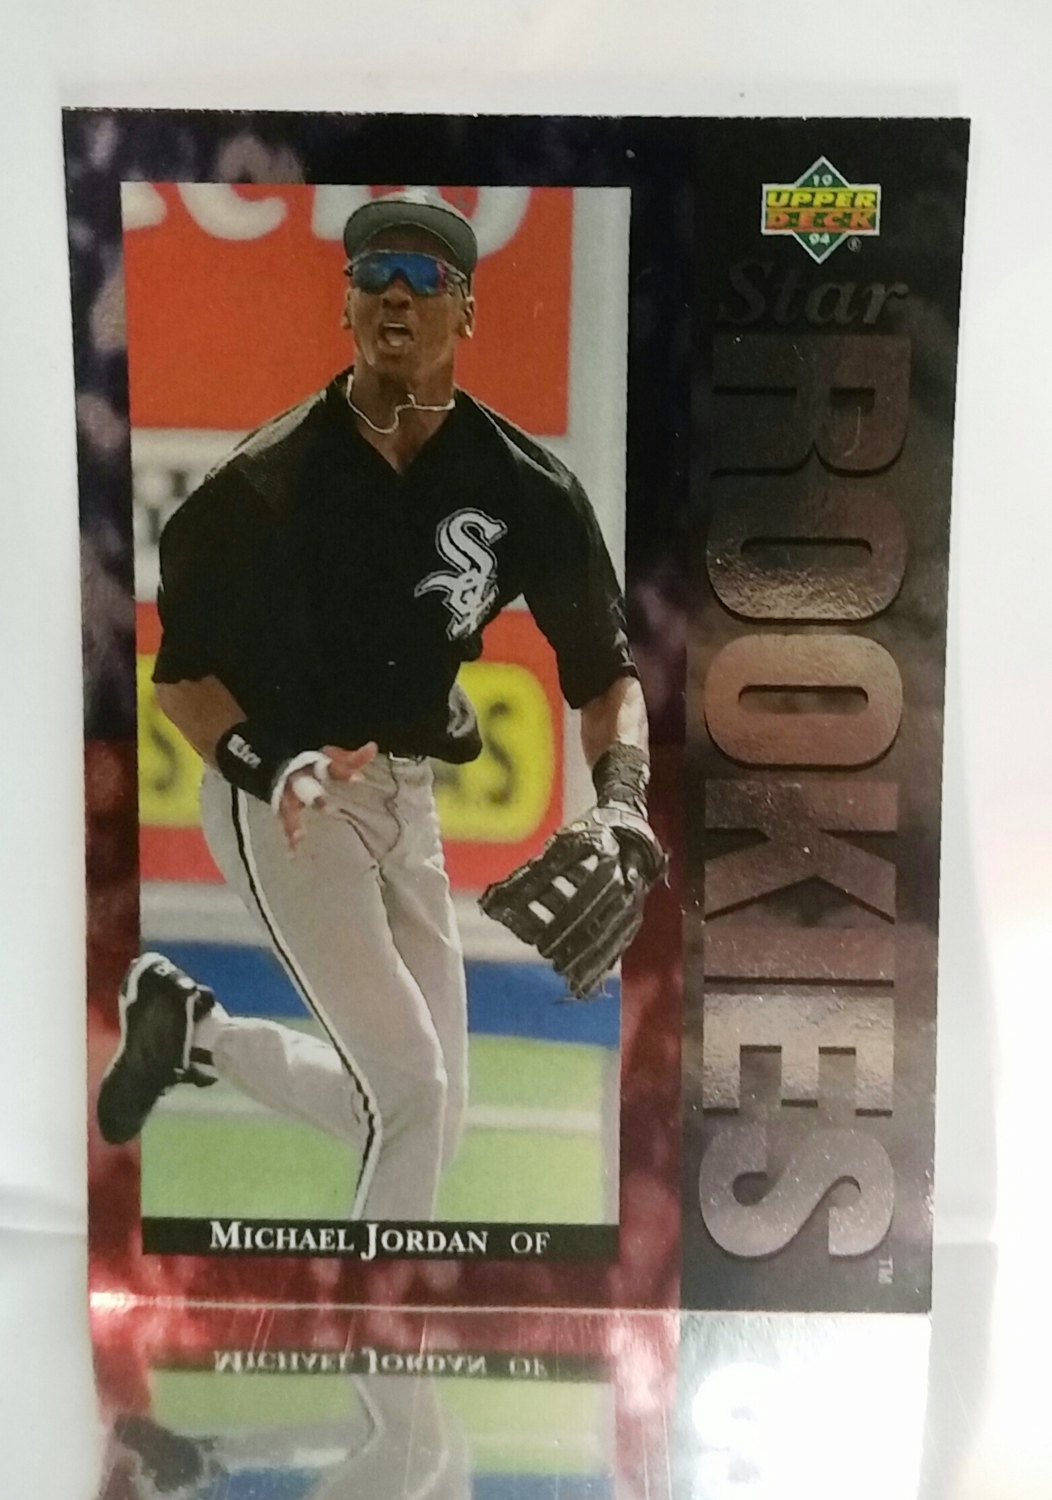 1994 Upper Deck 19 Michael Jordan Rookie Card Chicago White Sox 95 Mt Low Pop From Cardboard Coins